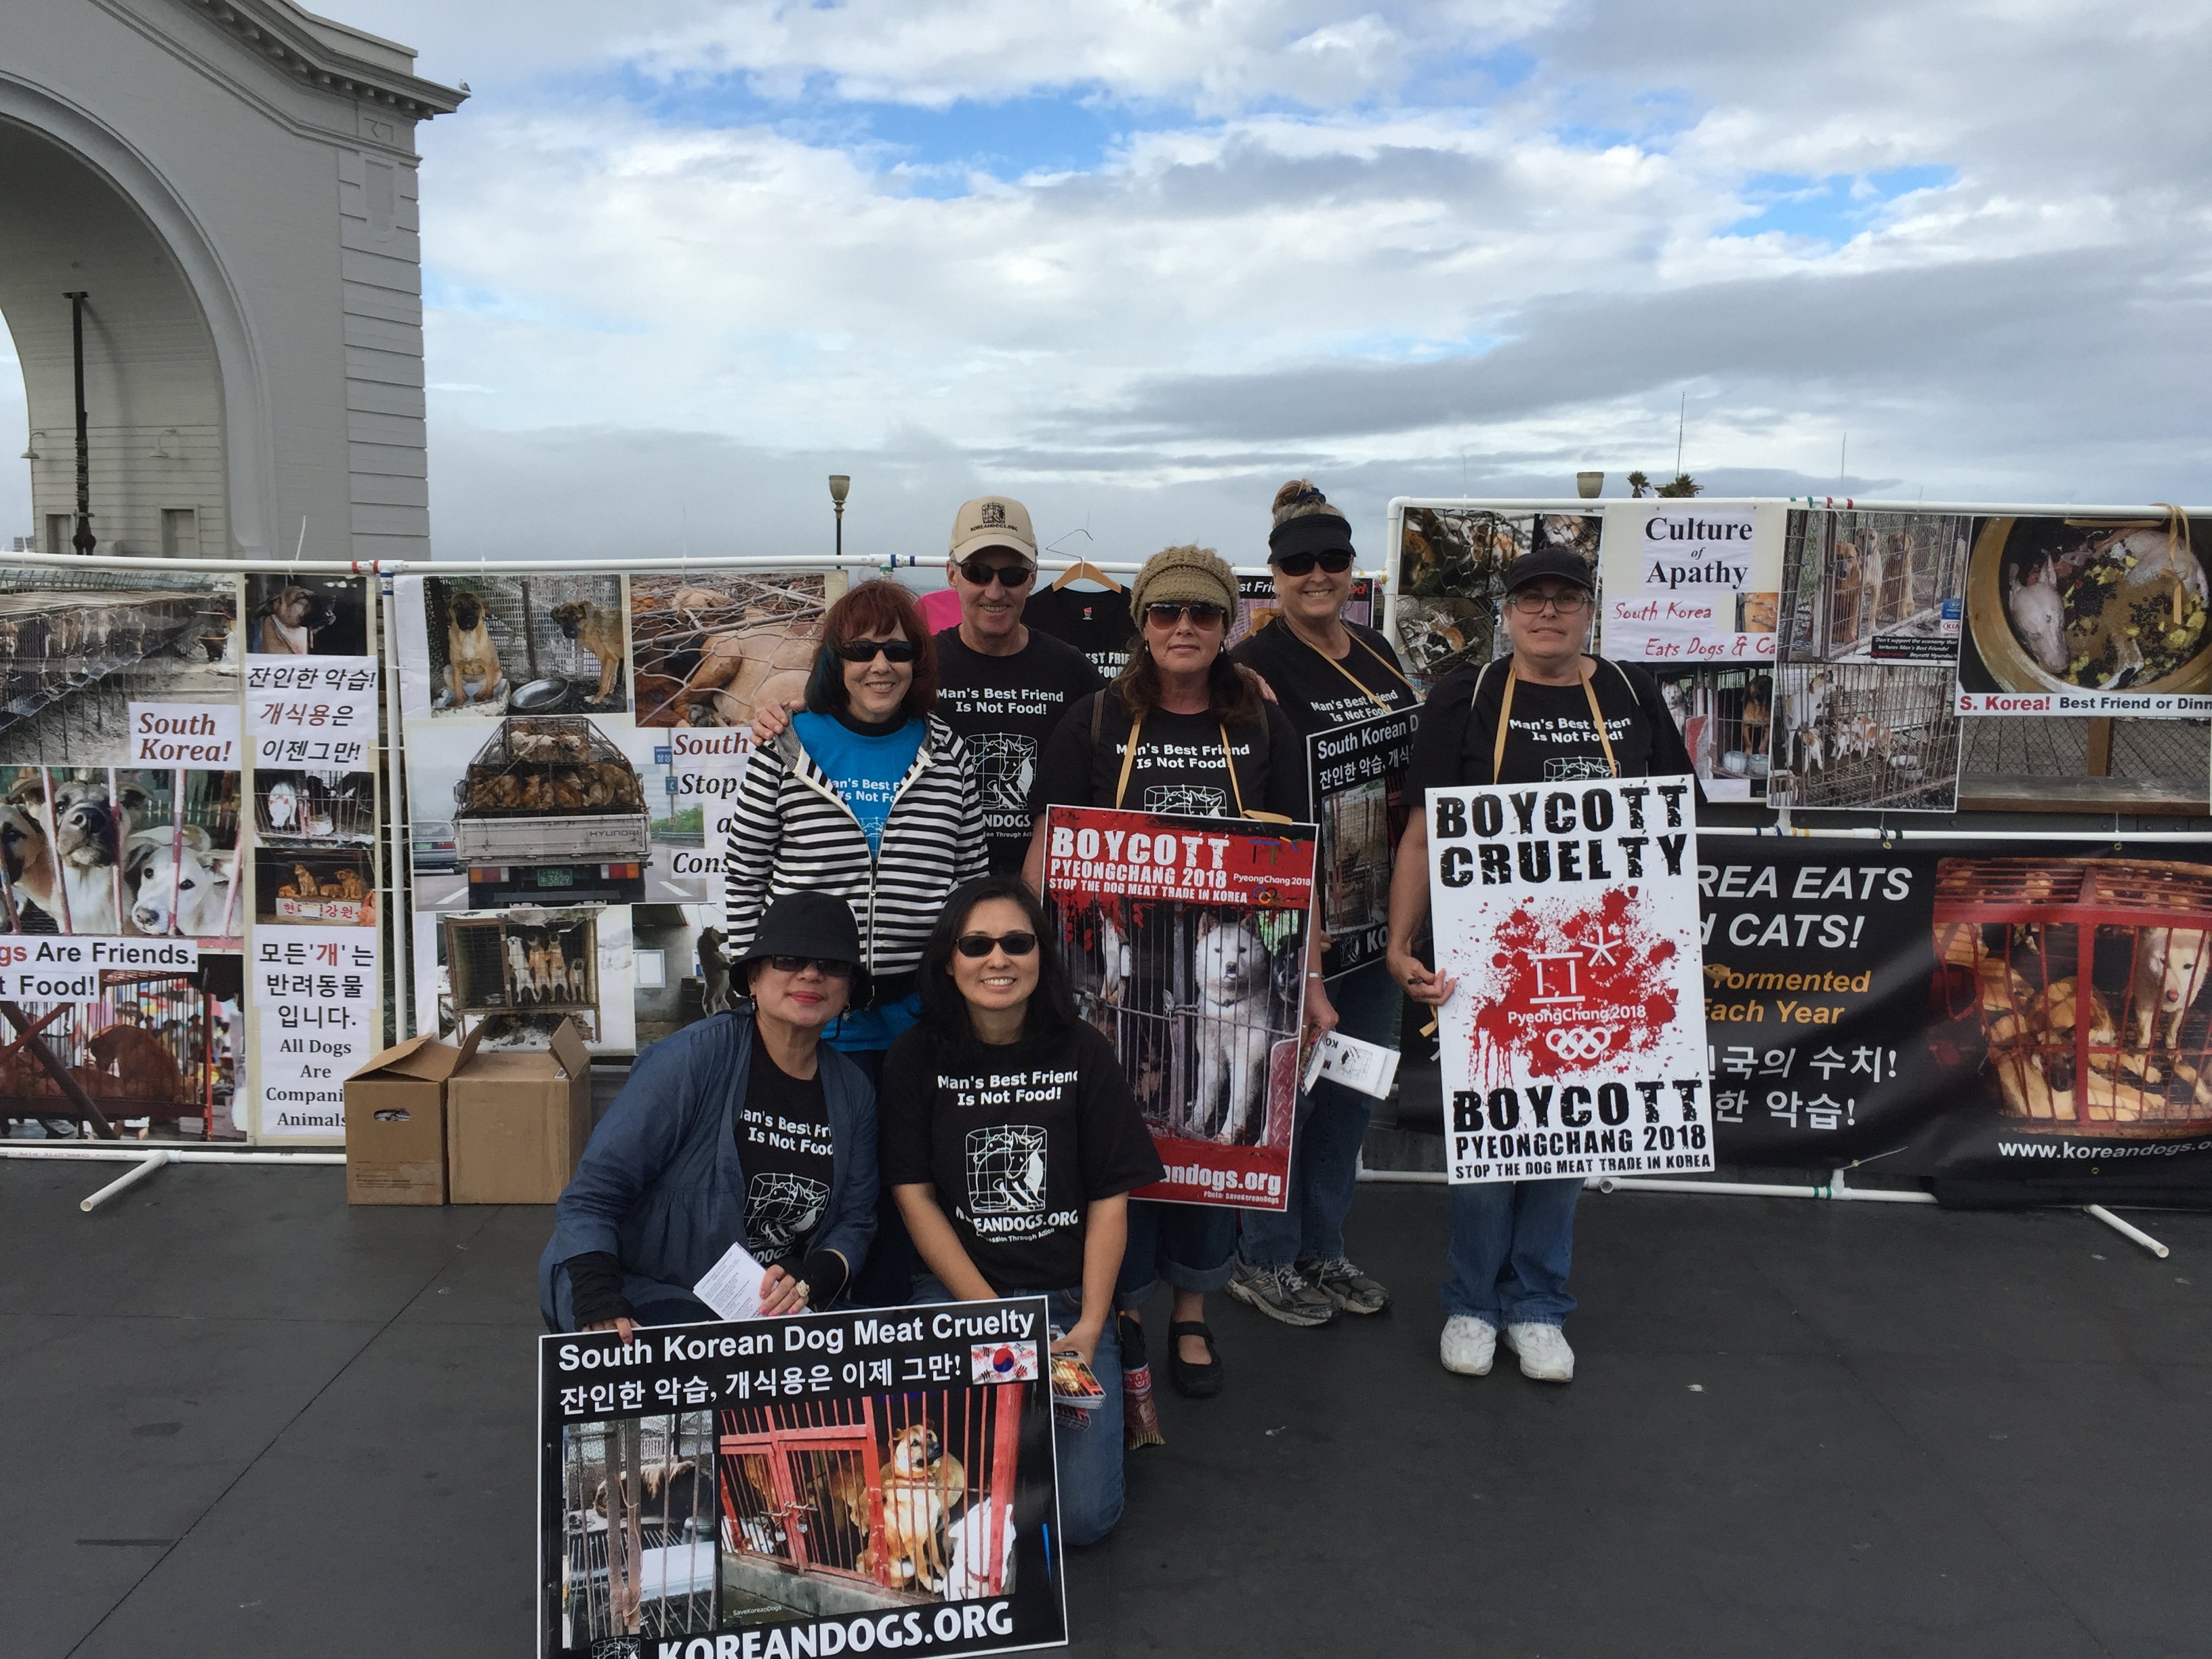 February 6, 2016 Saturday - Fisherman's Wharf, San Francisco, California Leafleting and Informational Event on South Korean Dog Meat Trade